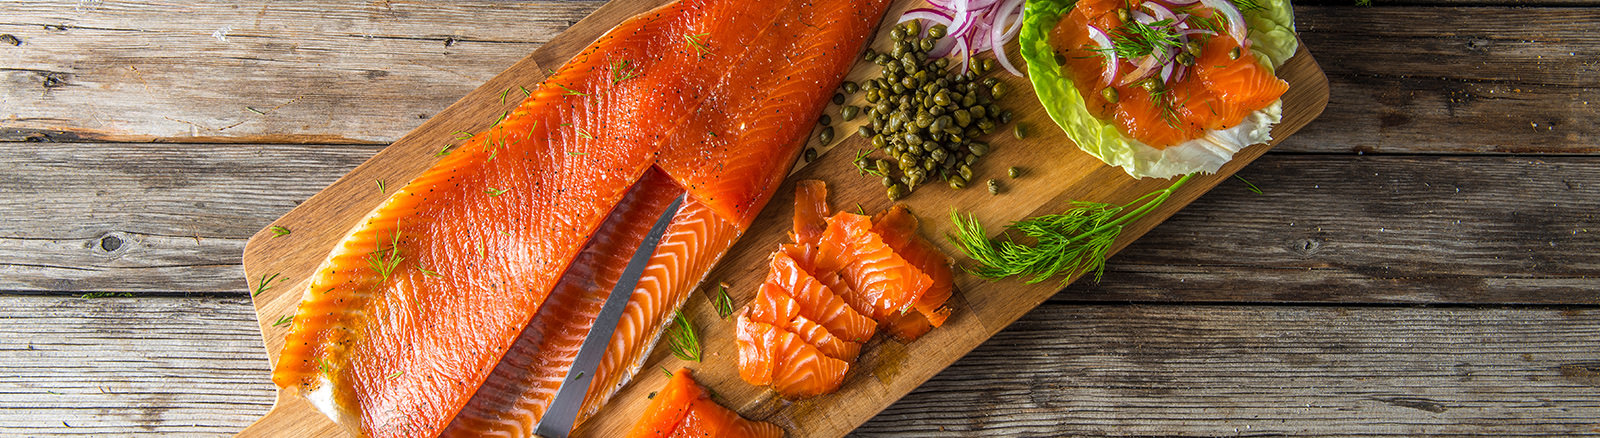 Traeger Wood Fire Grill Recipe Cold Smoked Salmon